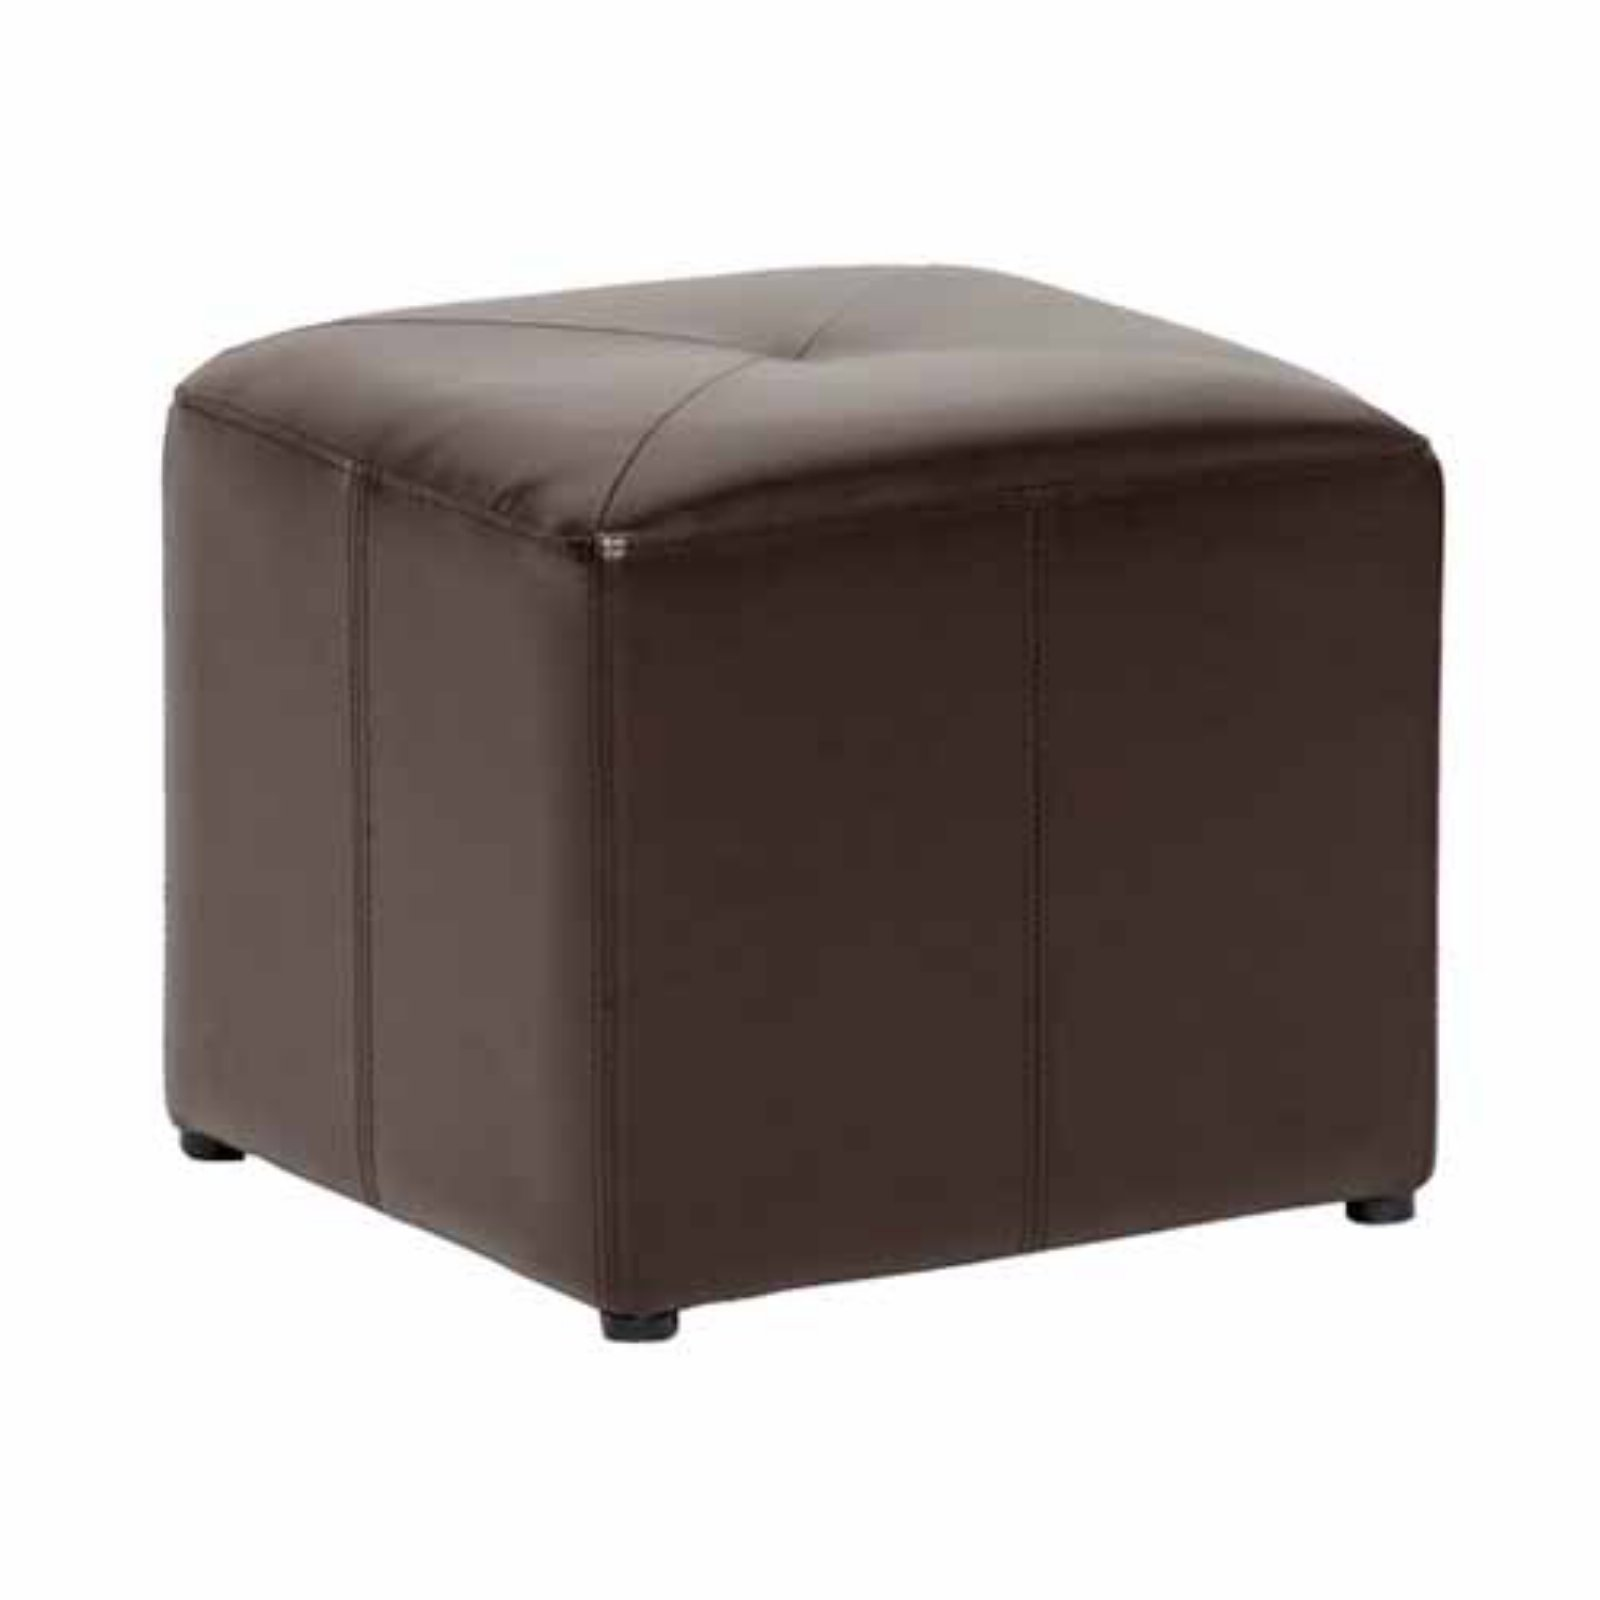 Baxton Studio Pebbles Cube Leather Ottoman Dark Brown by Baxton Studio